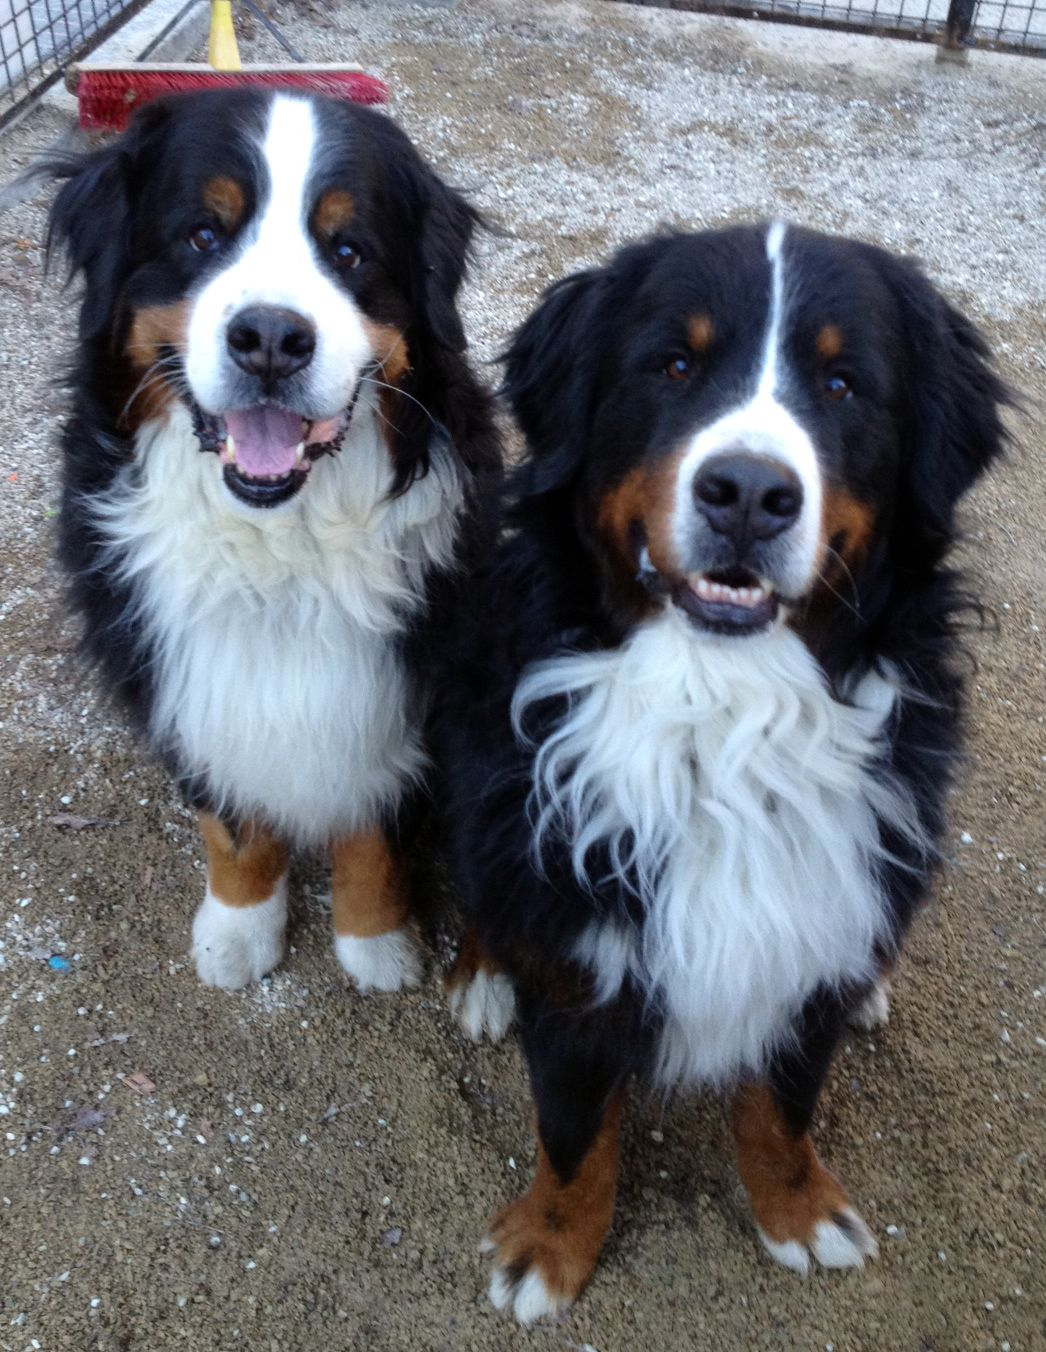 Two Handsome Dogs Tonka And Tie The Bernese Mountain Dogs At The Washington Square Park Dog Run In Greenwich Village Nyc Dogs Animals Beautiful Dog Friends